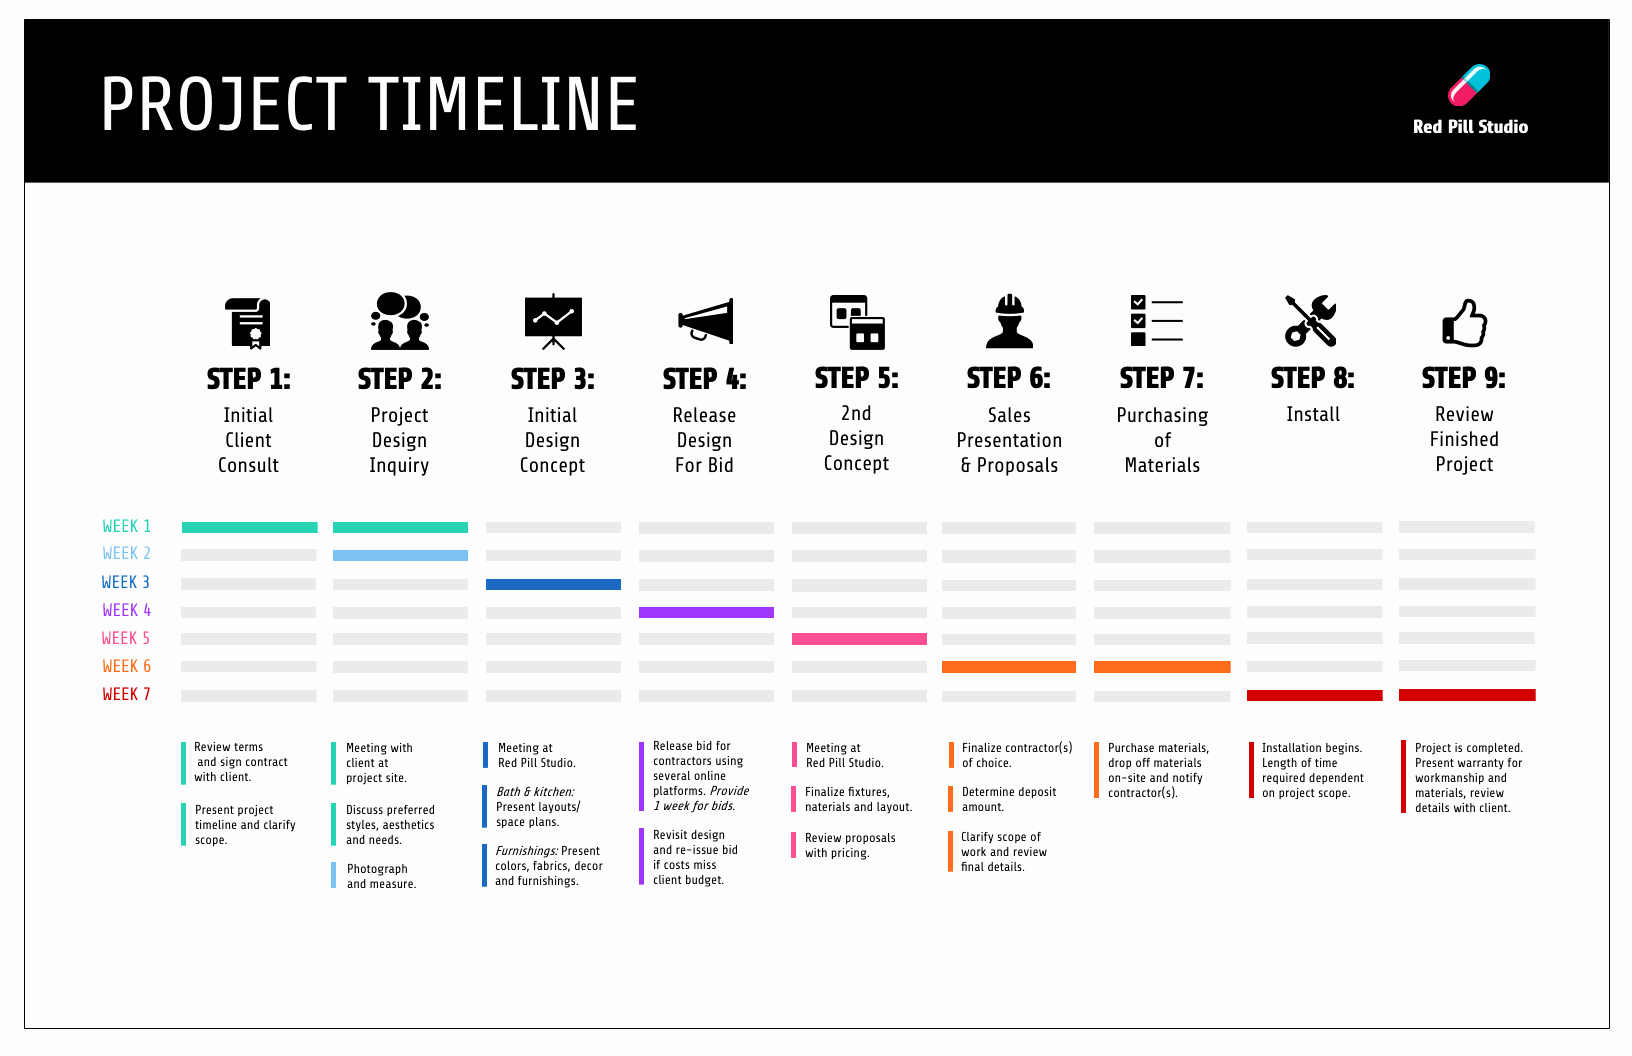 Remodel Project Plan Template Beautiful 15 Project Plan Templates & Examples to Align Your Team